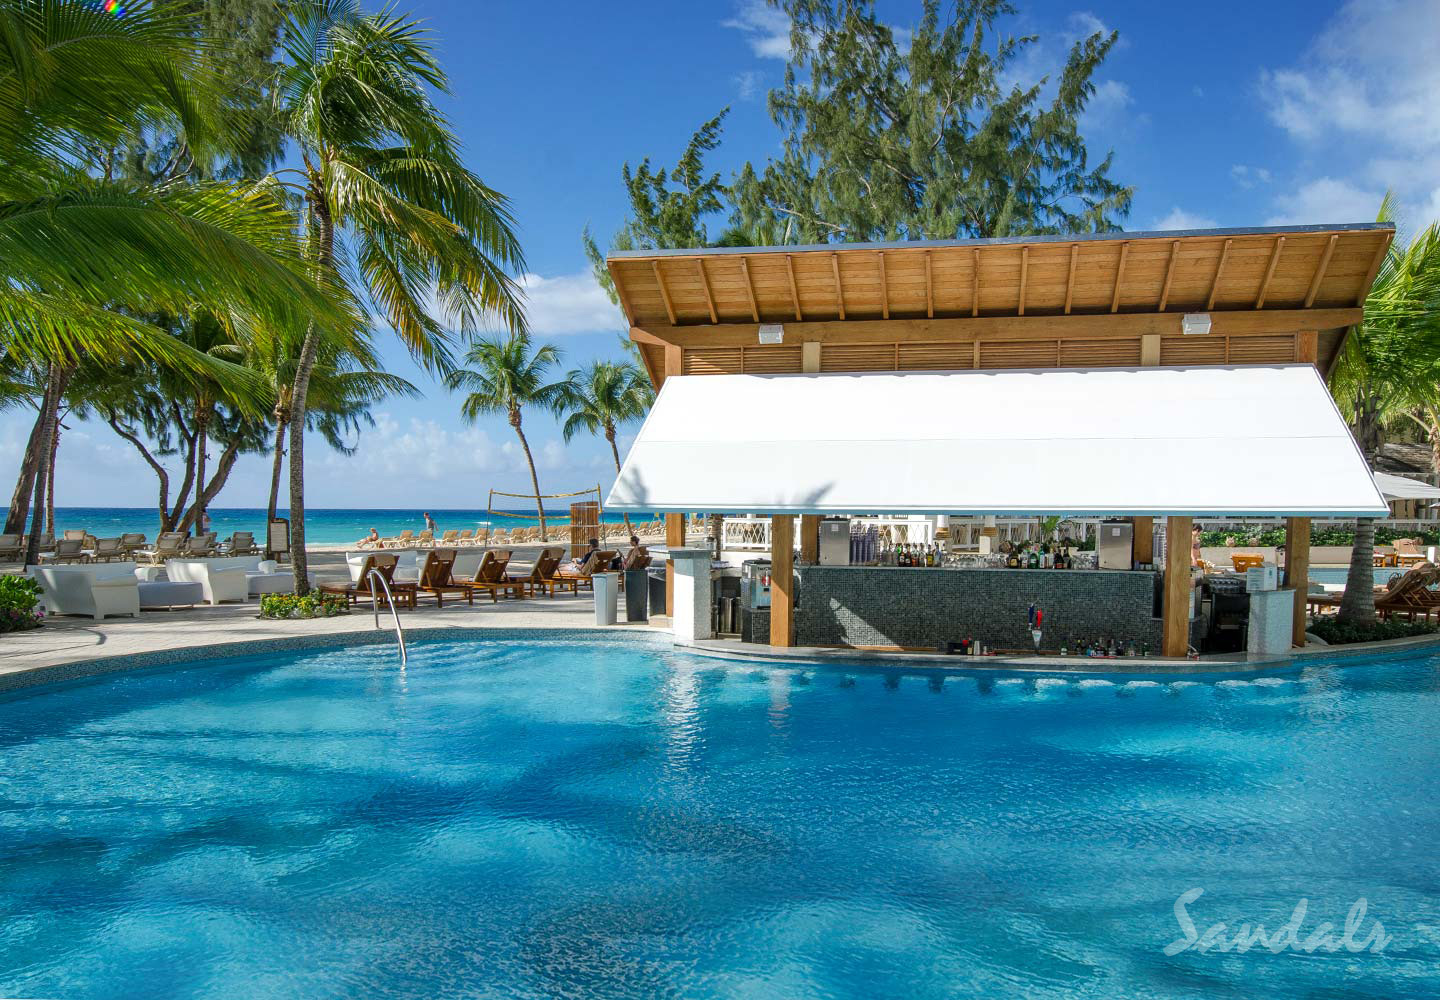 Travel Agency All-Inclusive Resort Sandals Barbados 18